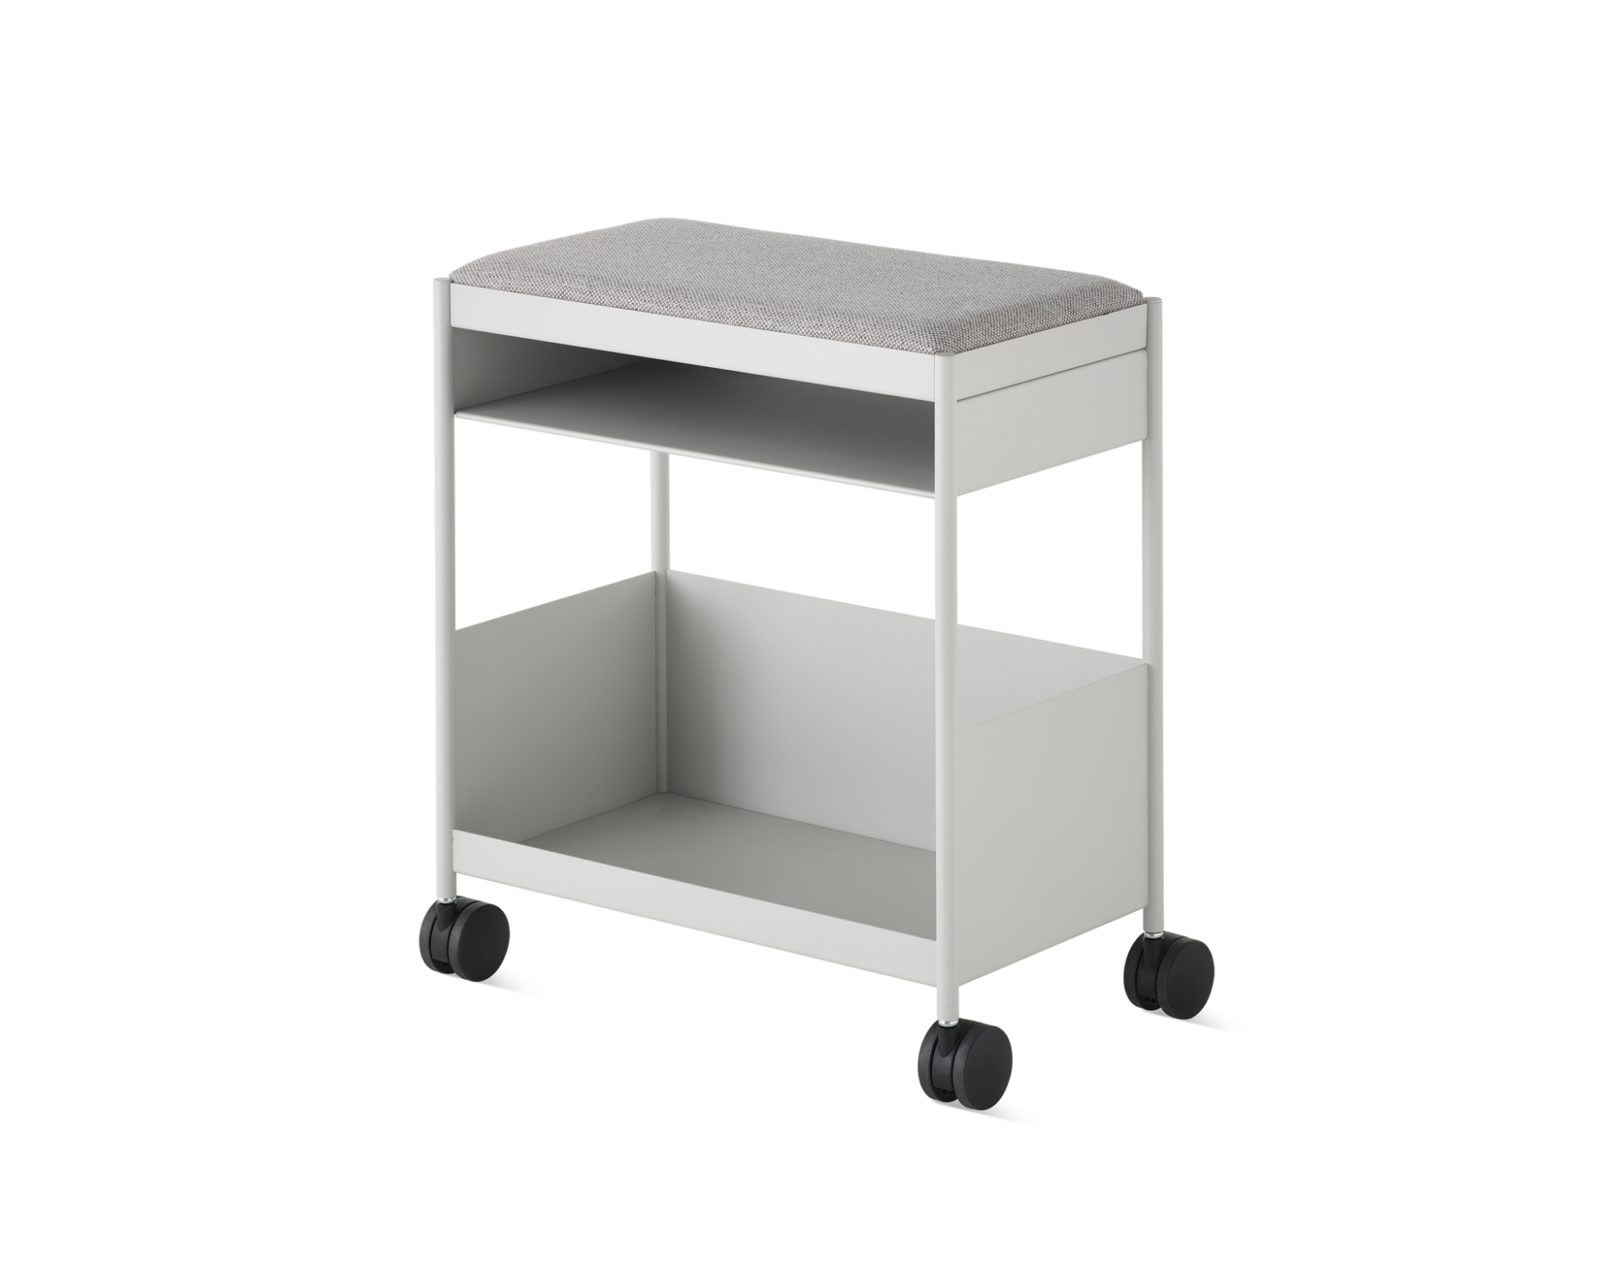 A white mobile individual OE1 Storage Trolley with a small top shelf and large open bottom shelf and a grey fabric cushion top.